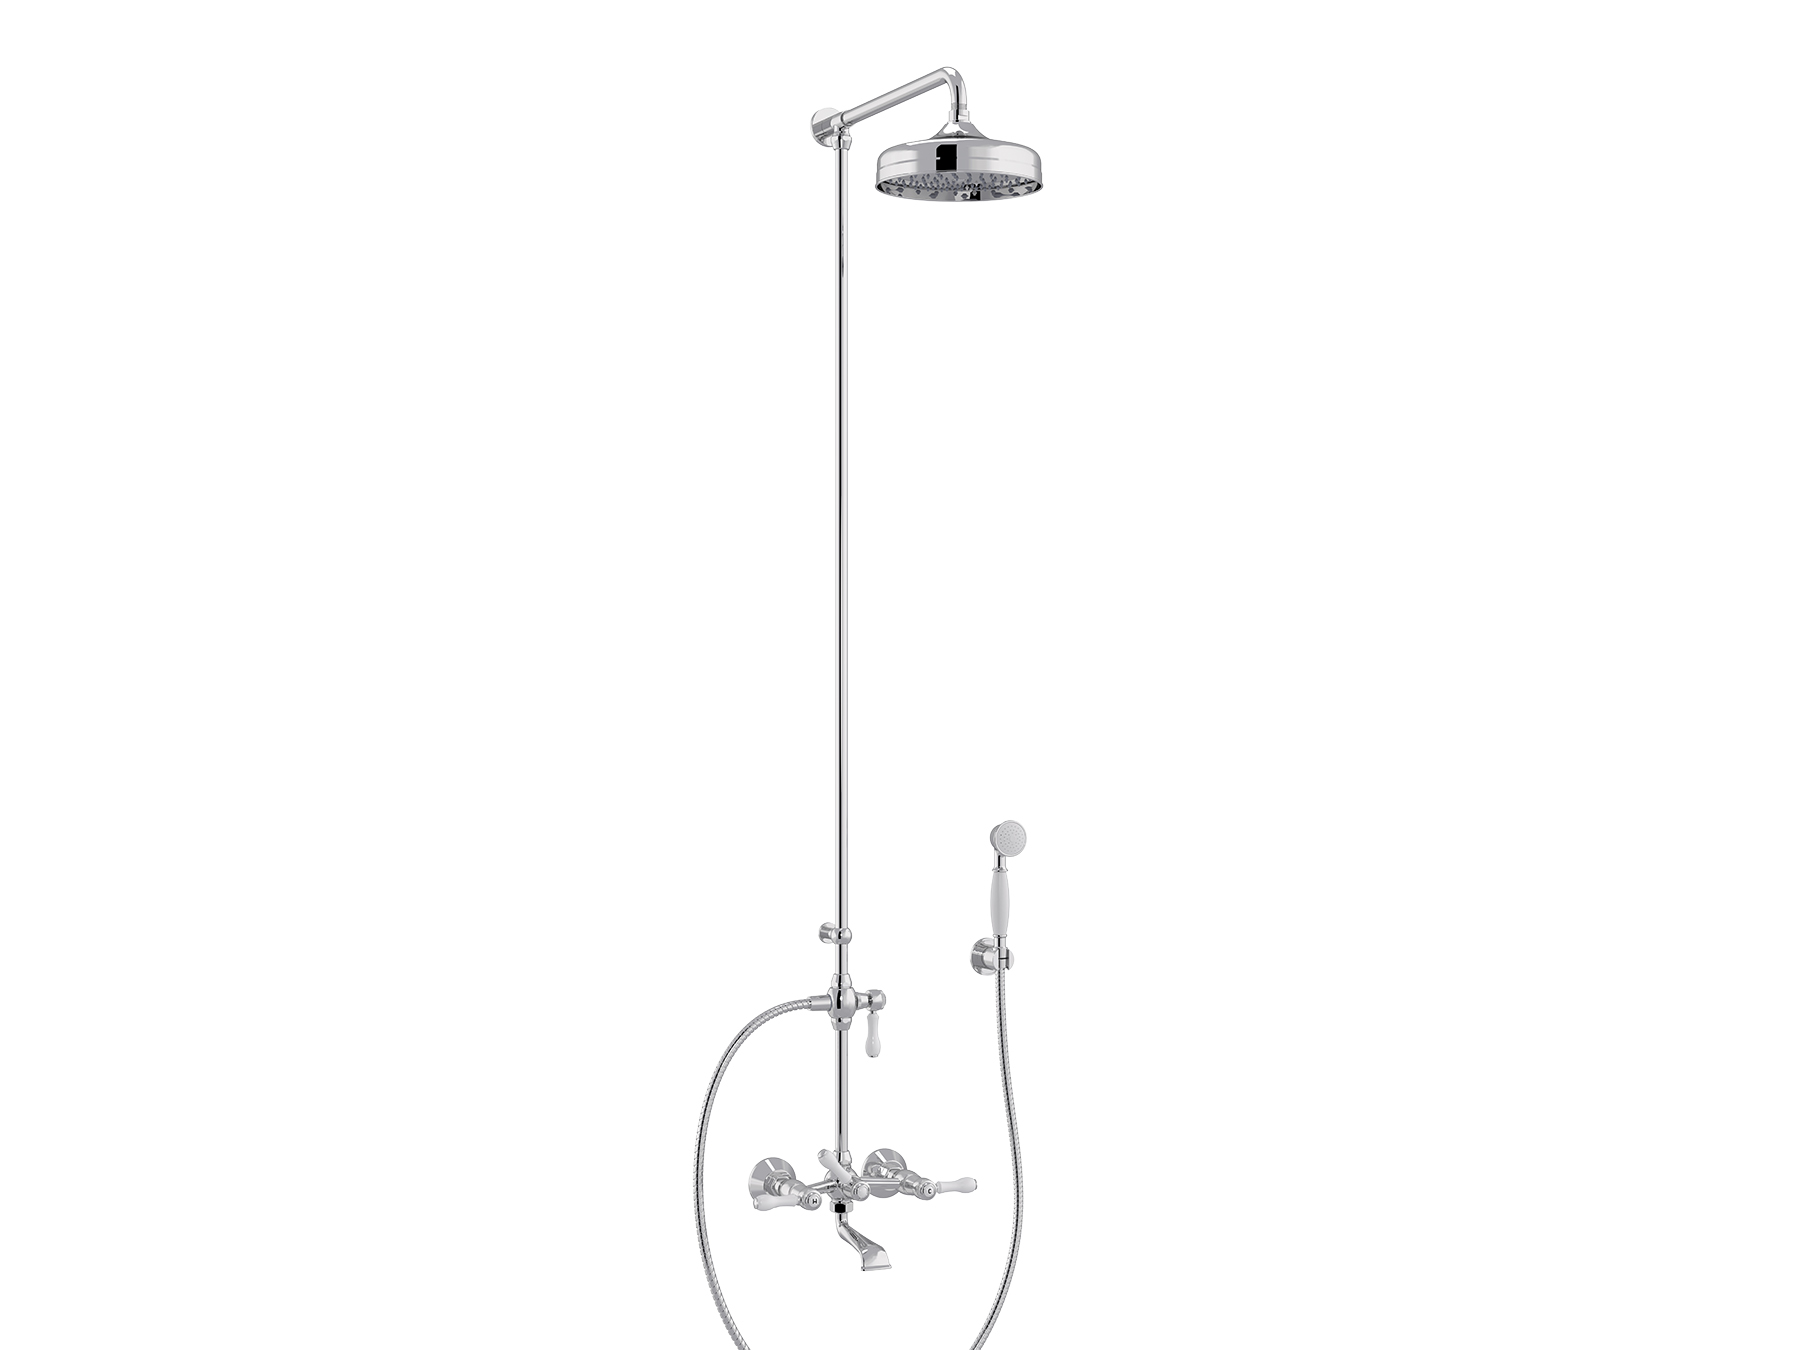 Set bath-shower mixer, head Ø200mm 1935.--.75-xx